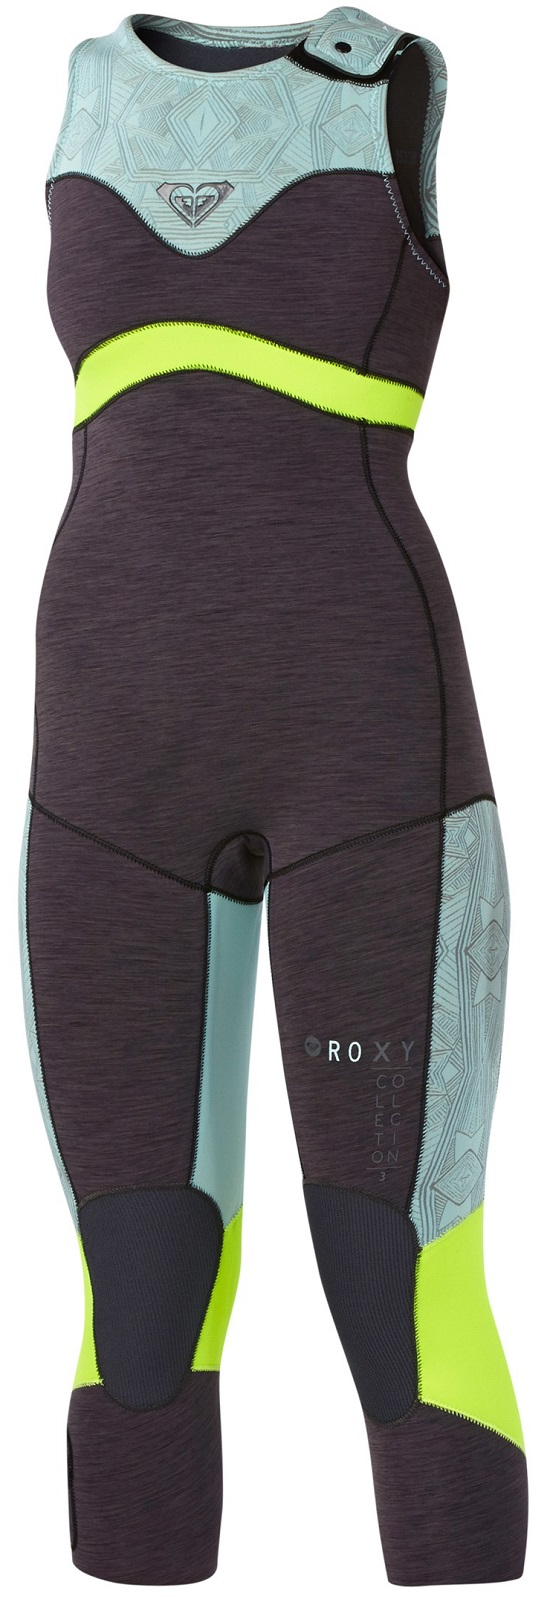 Roxy XY Women's Wetsuit Long John 3mm Sleeveless - Graphite/Blue